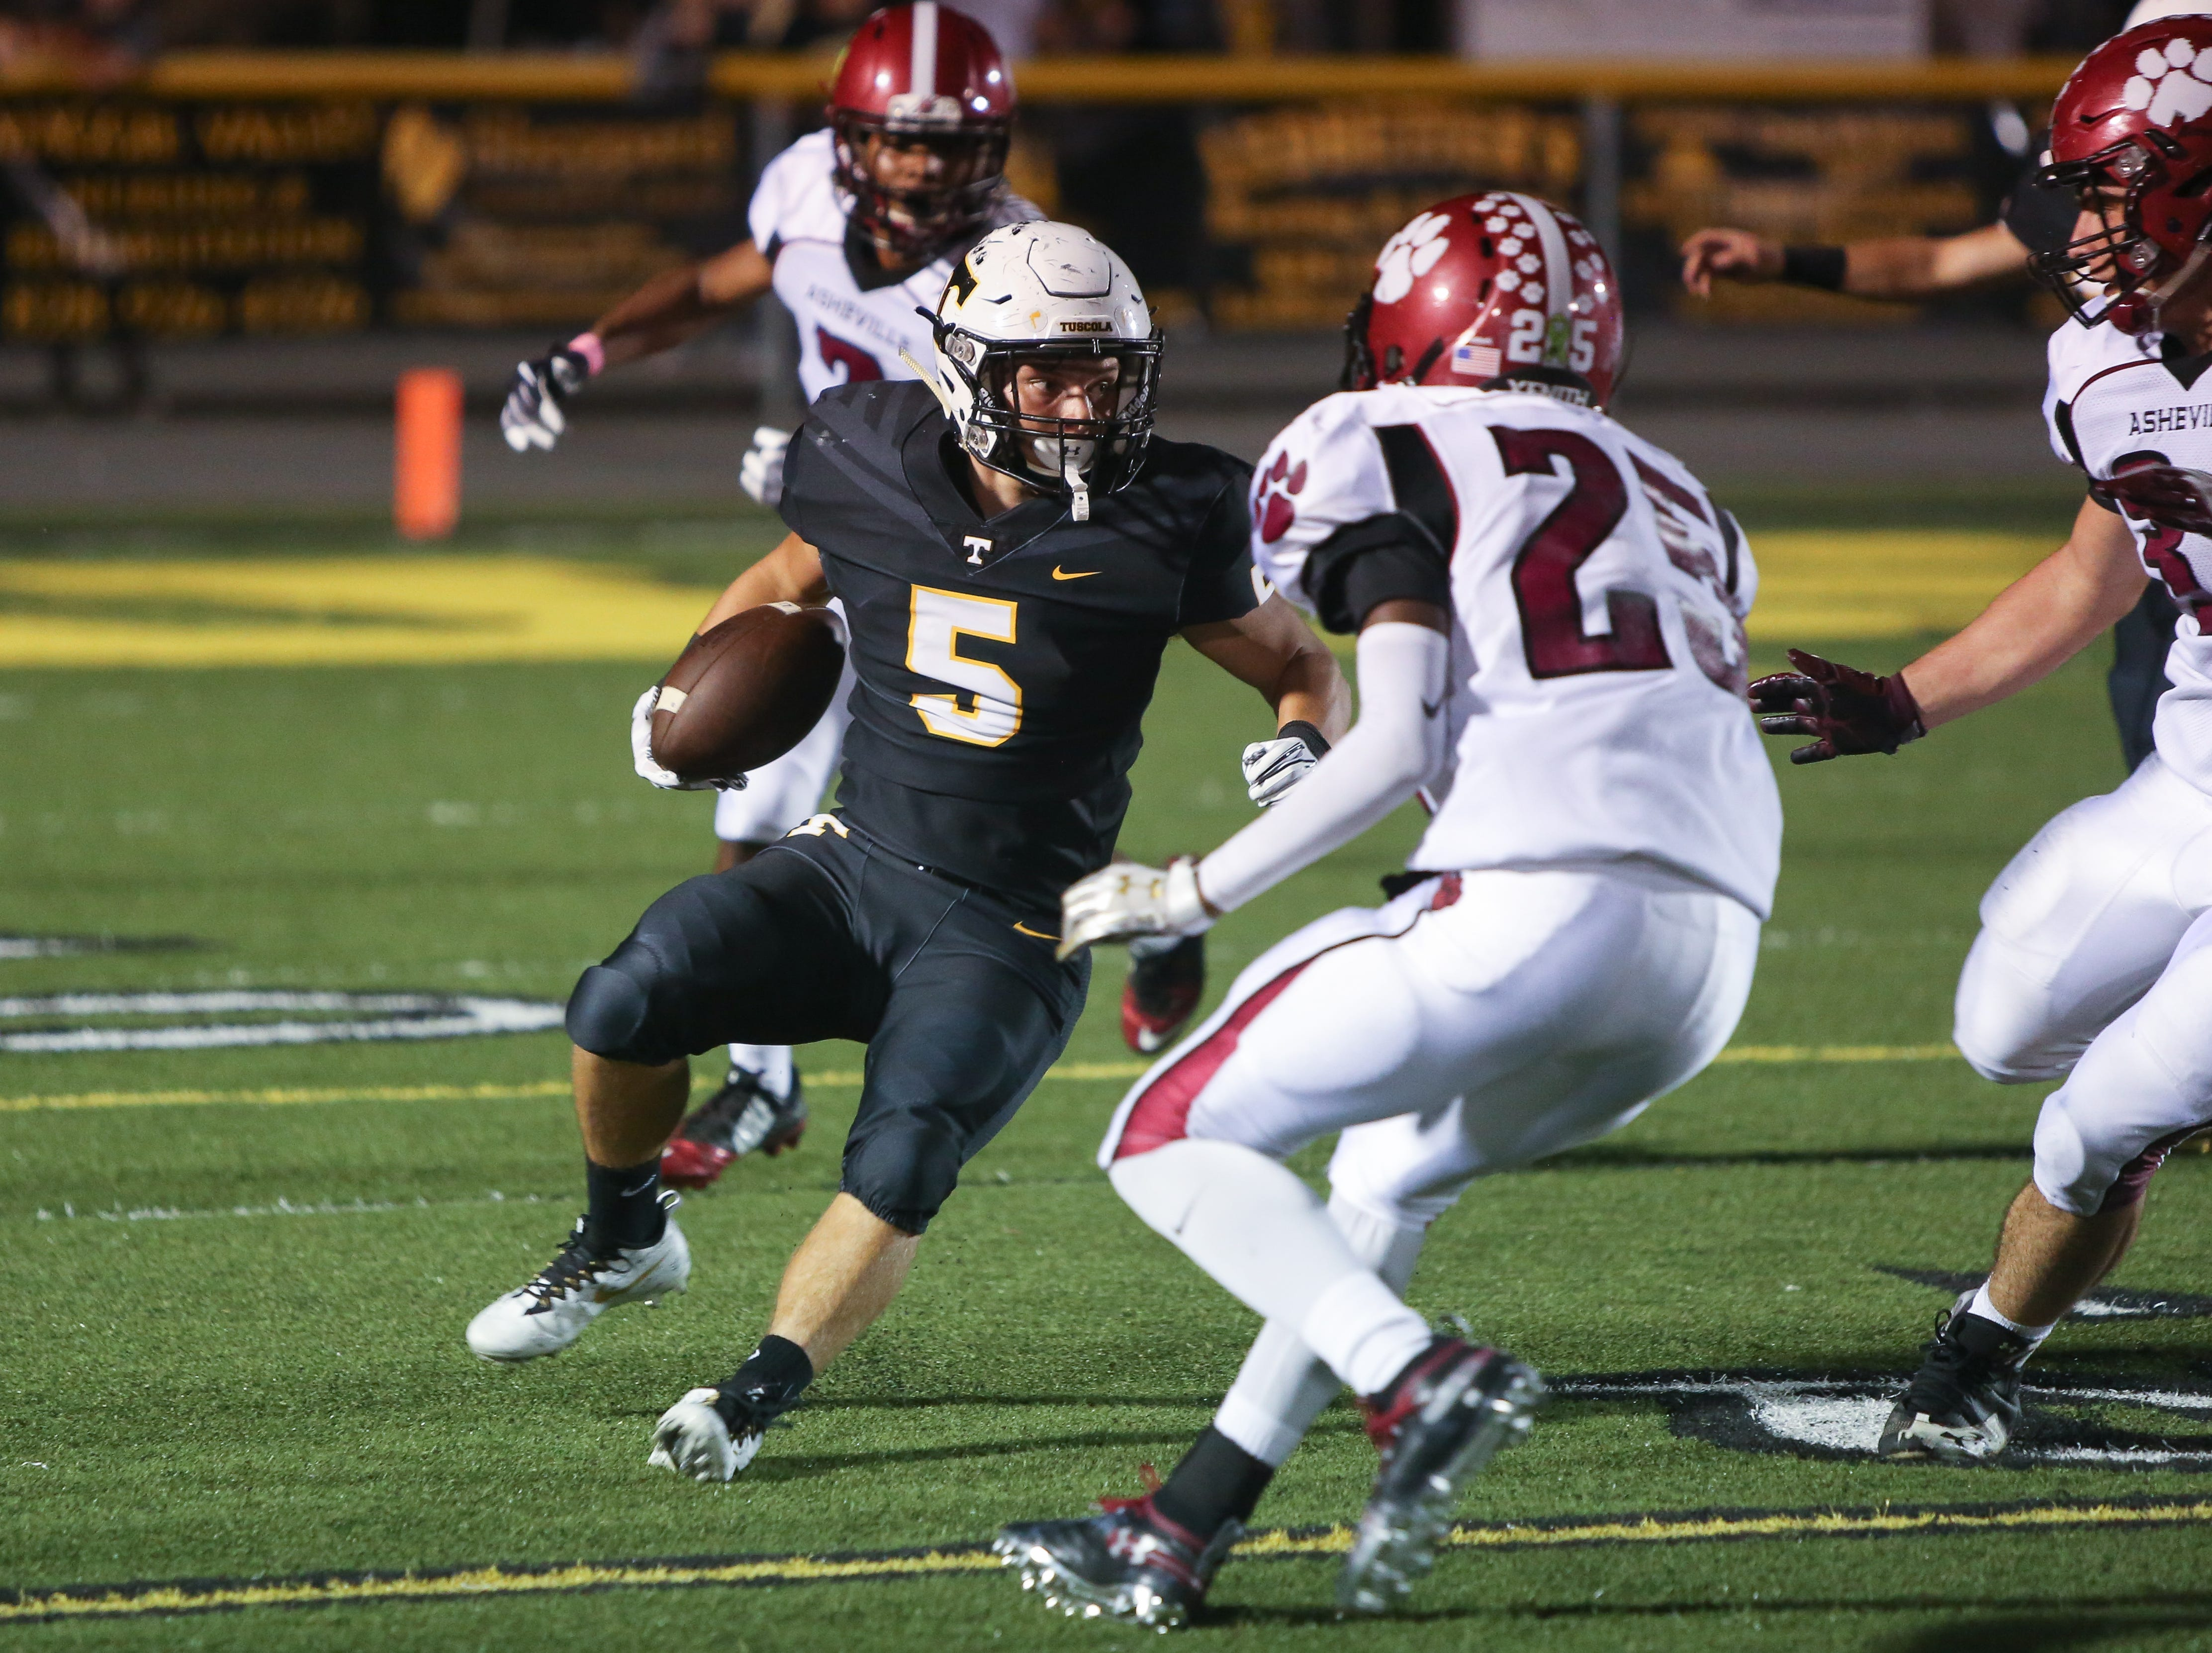 Tuscola's Nick Cole runs the ball on Friday, October 5th, 2018 at Tuscola.  Asheville took the win over Tuscola with a final score of 37-6.